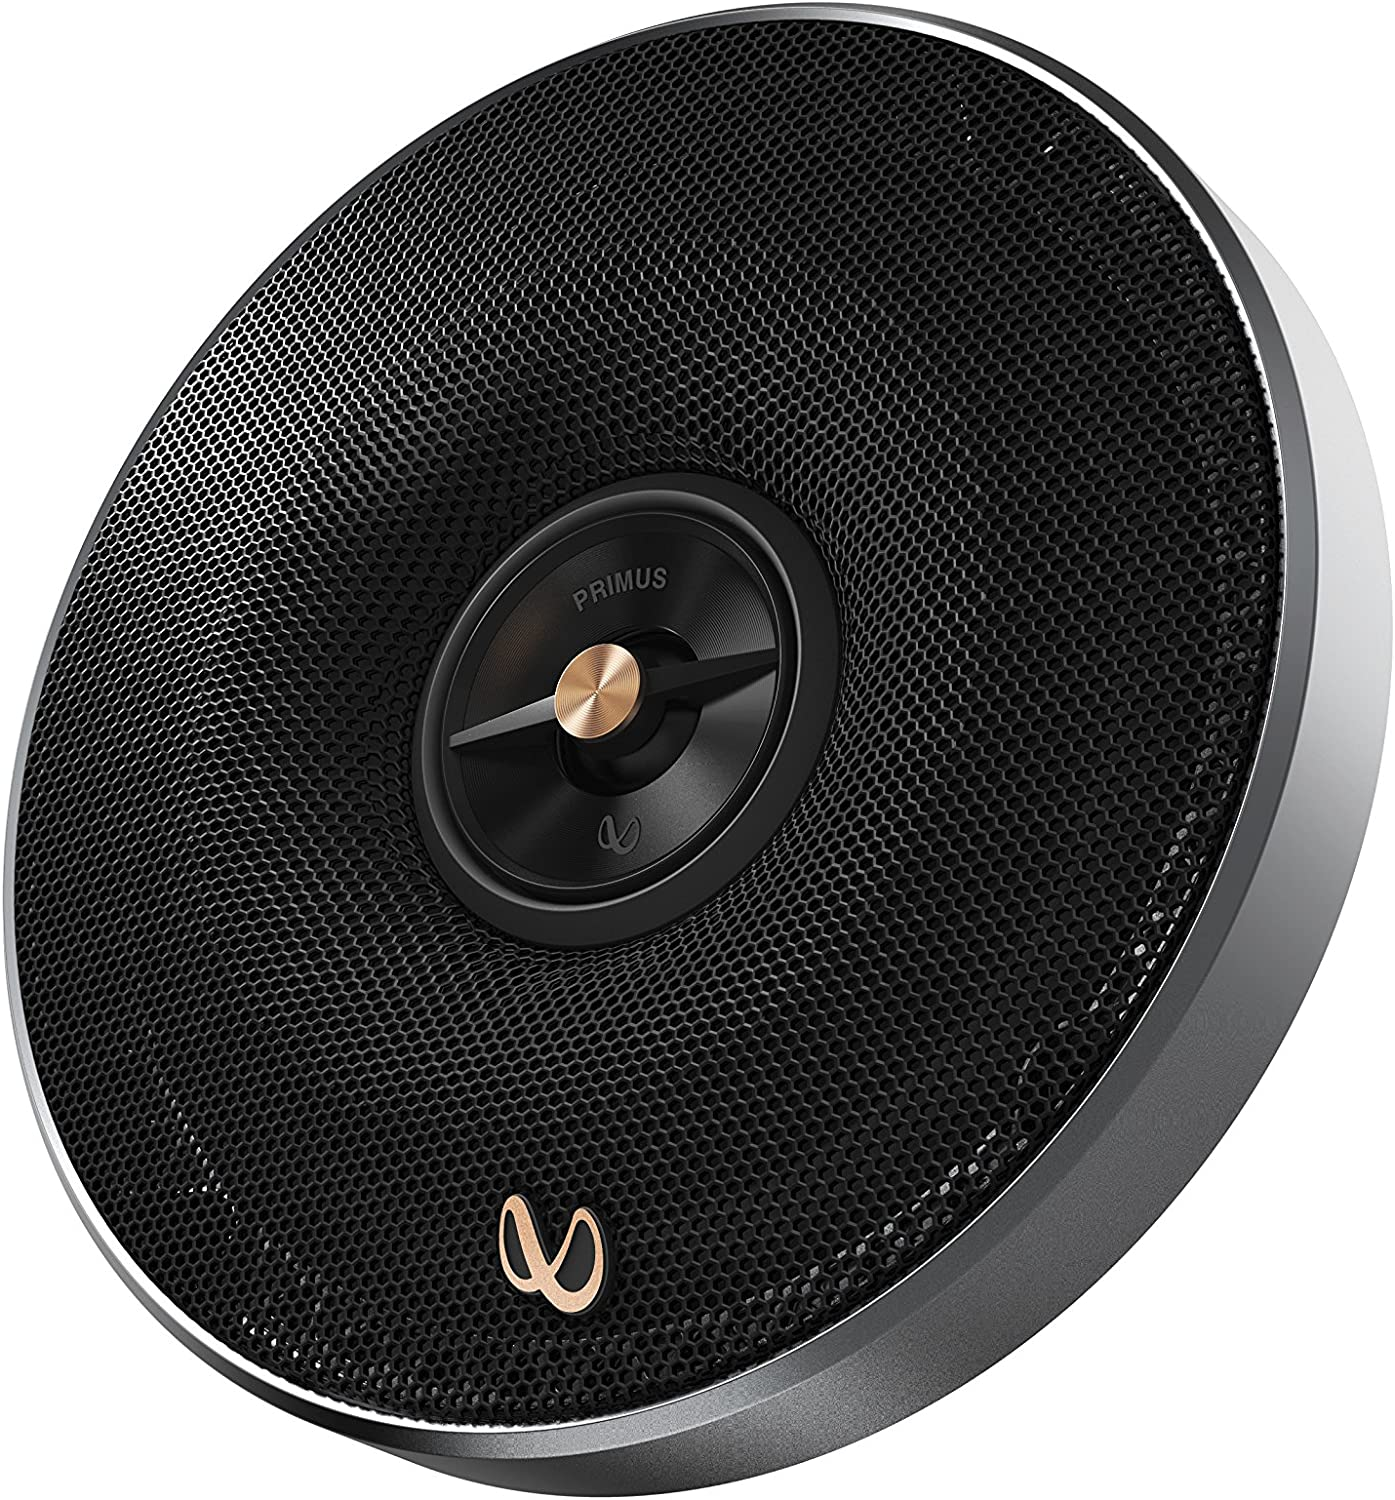 Includes Two Pairs of PR6512IS Primus 6.5 Inch 2-Way Multi-Element Speakers Infinity